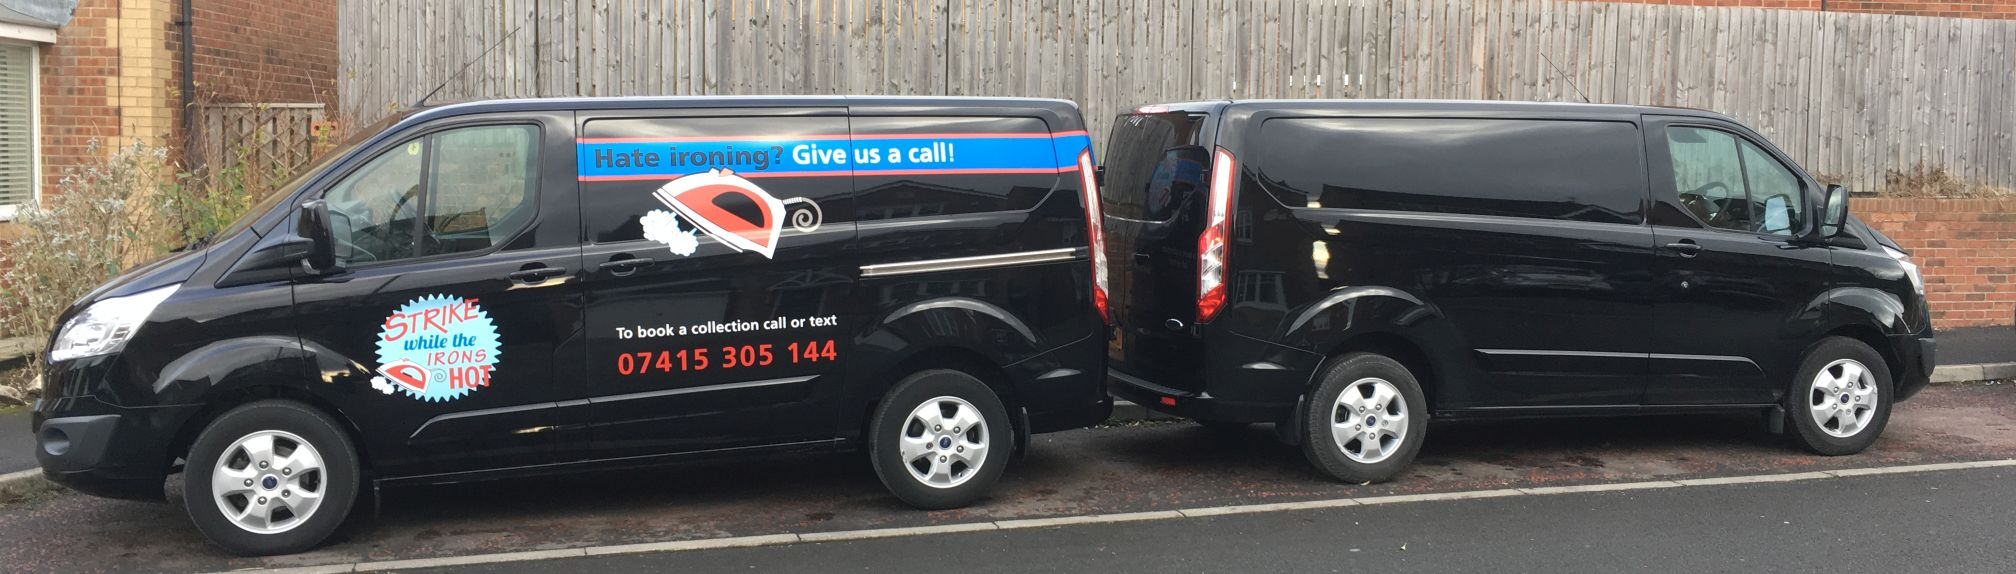 Our vans cover County Durham and Sunderland six nights per week